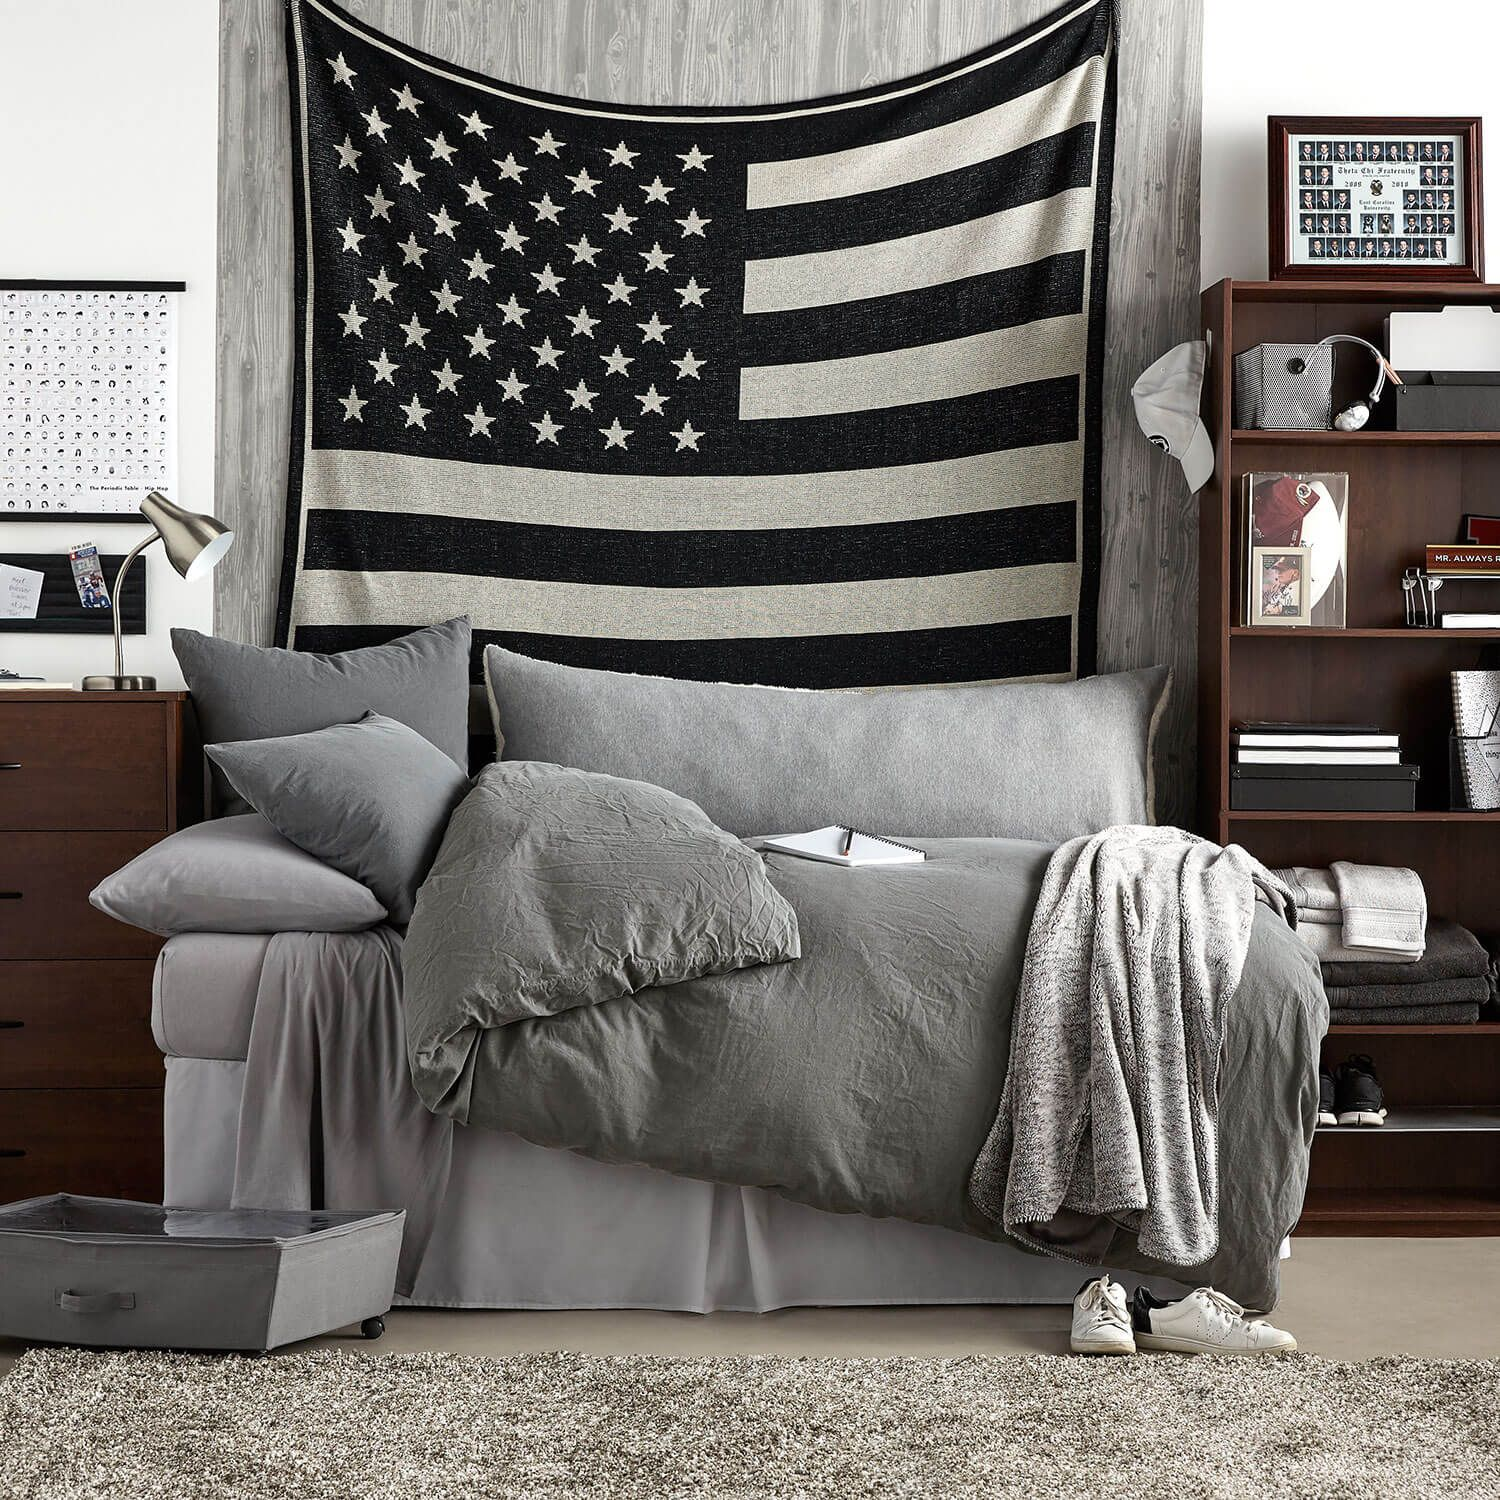 Dormiguy ludlow room shop to get this look - Cool room colors for guys ...